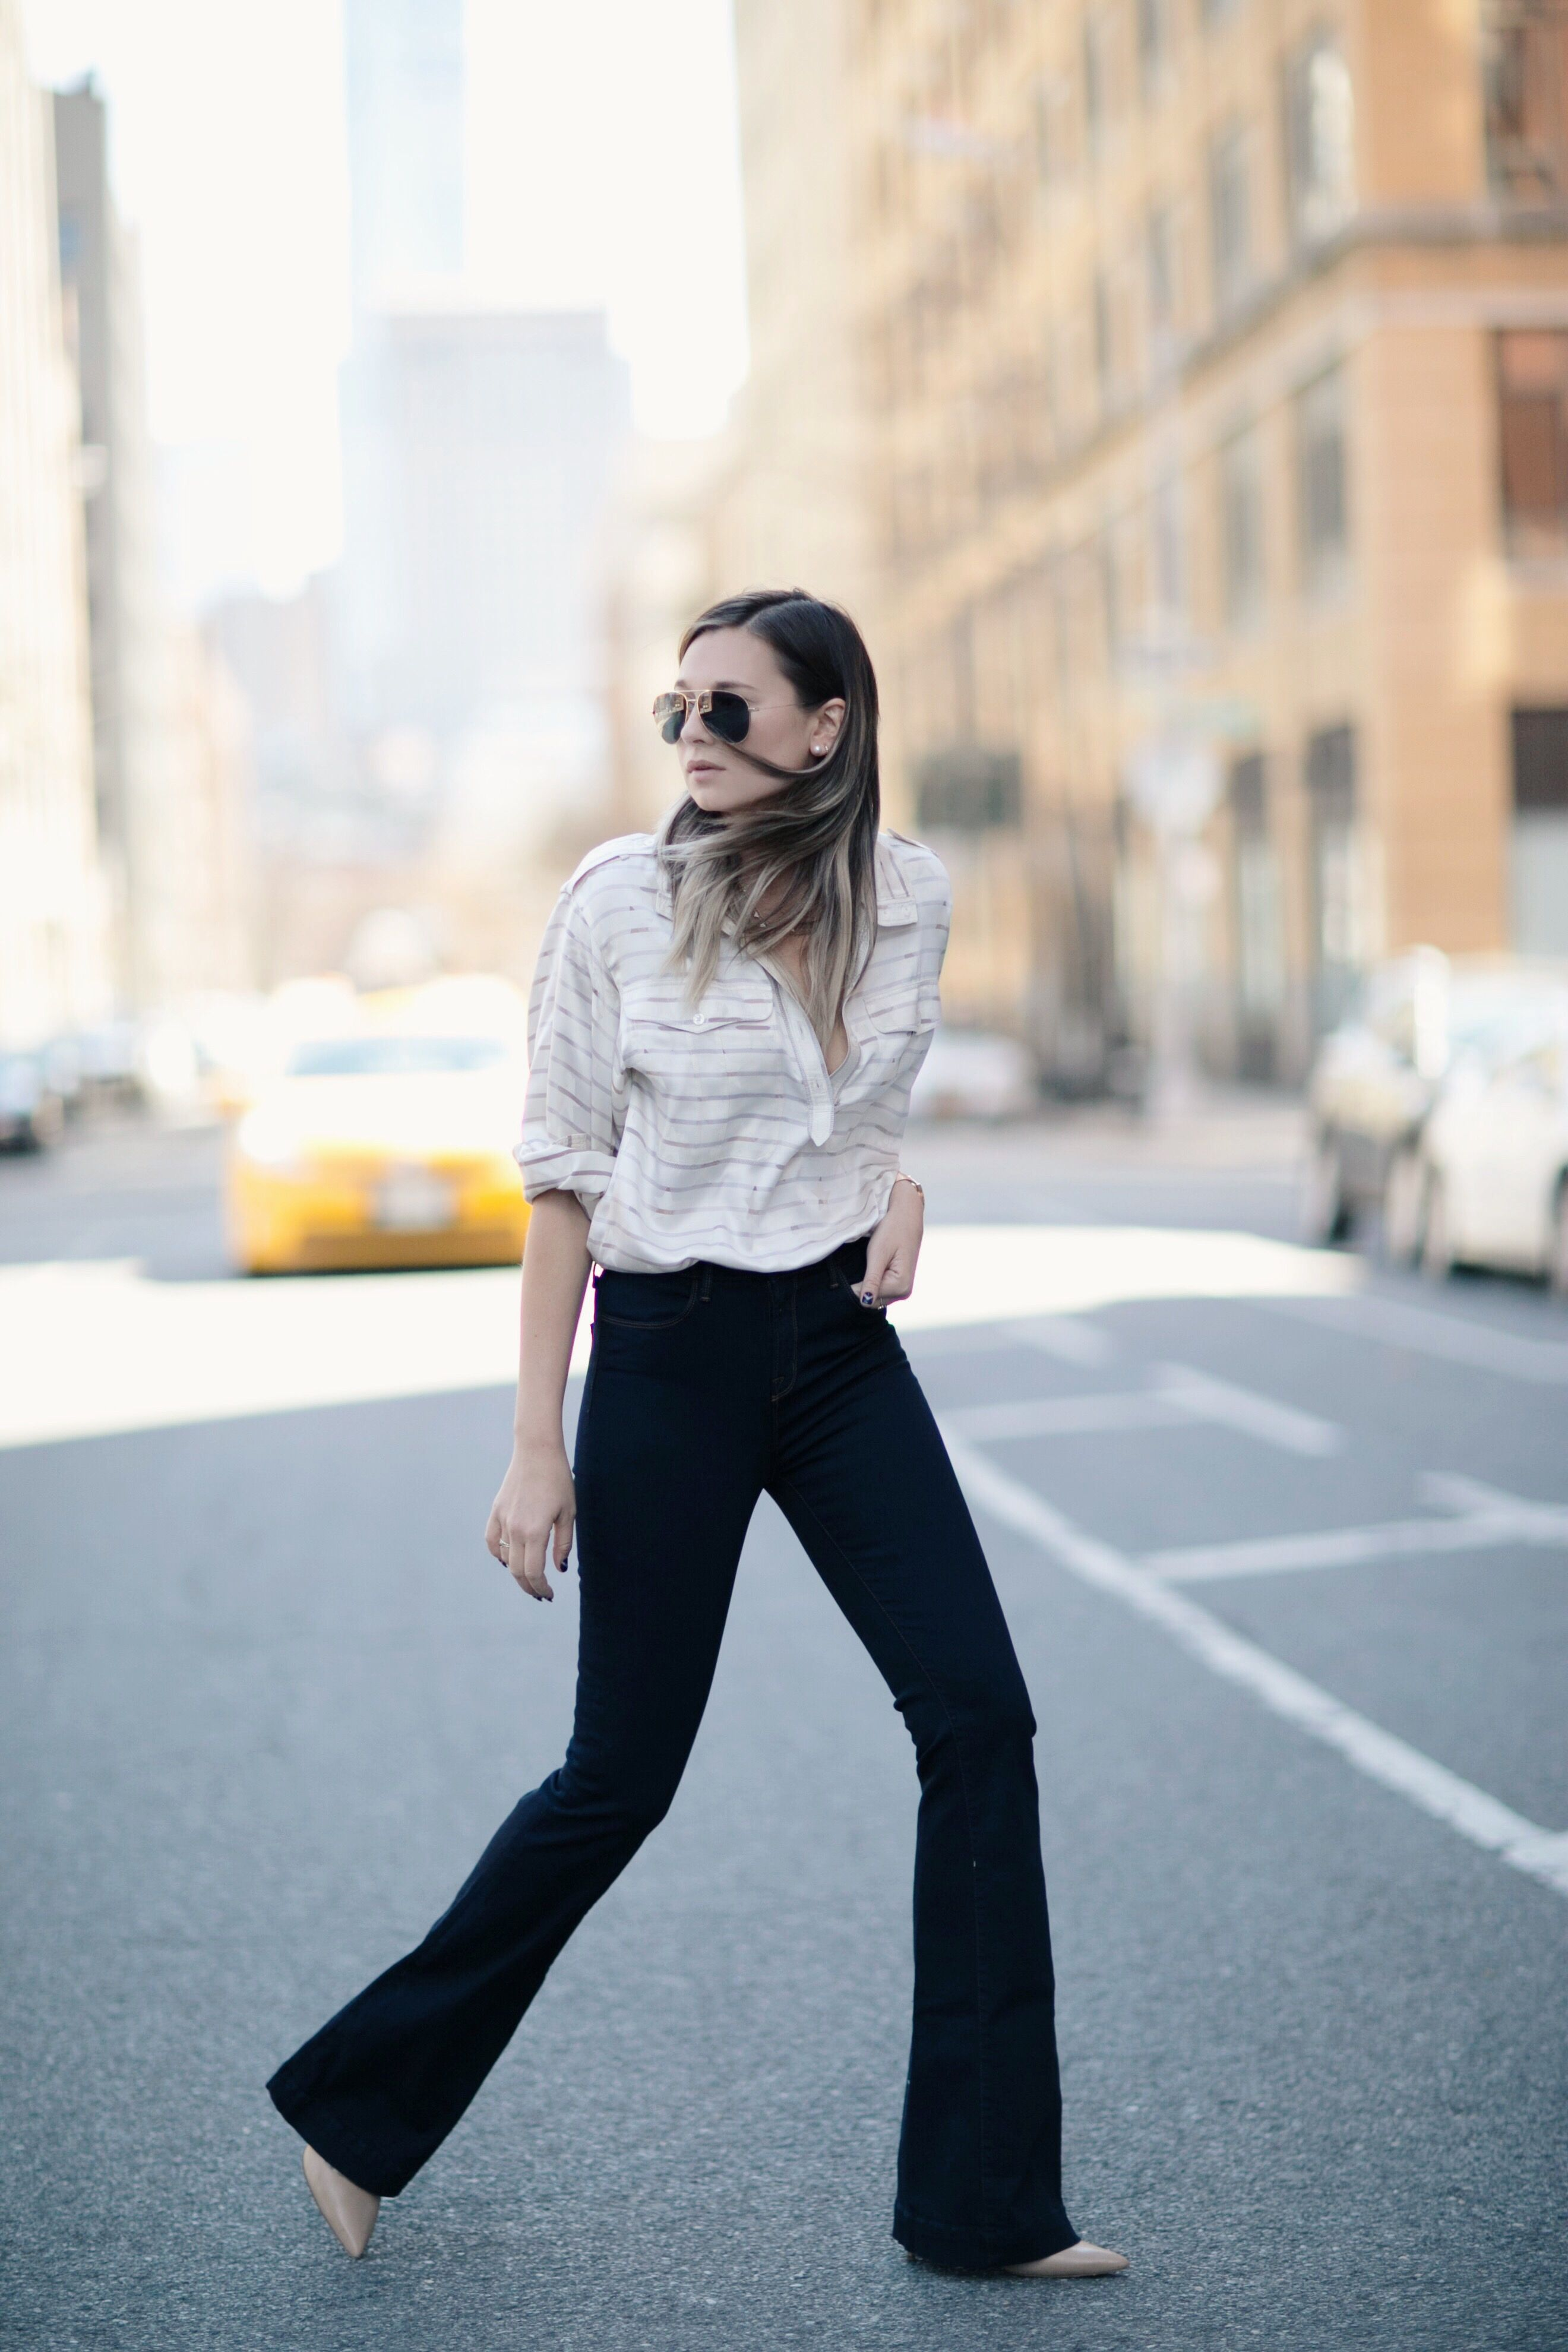 Danielle Bernstein of We Wore What in a striped top tucked into flared jeans